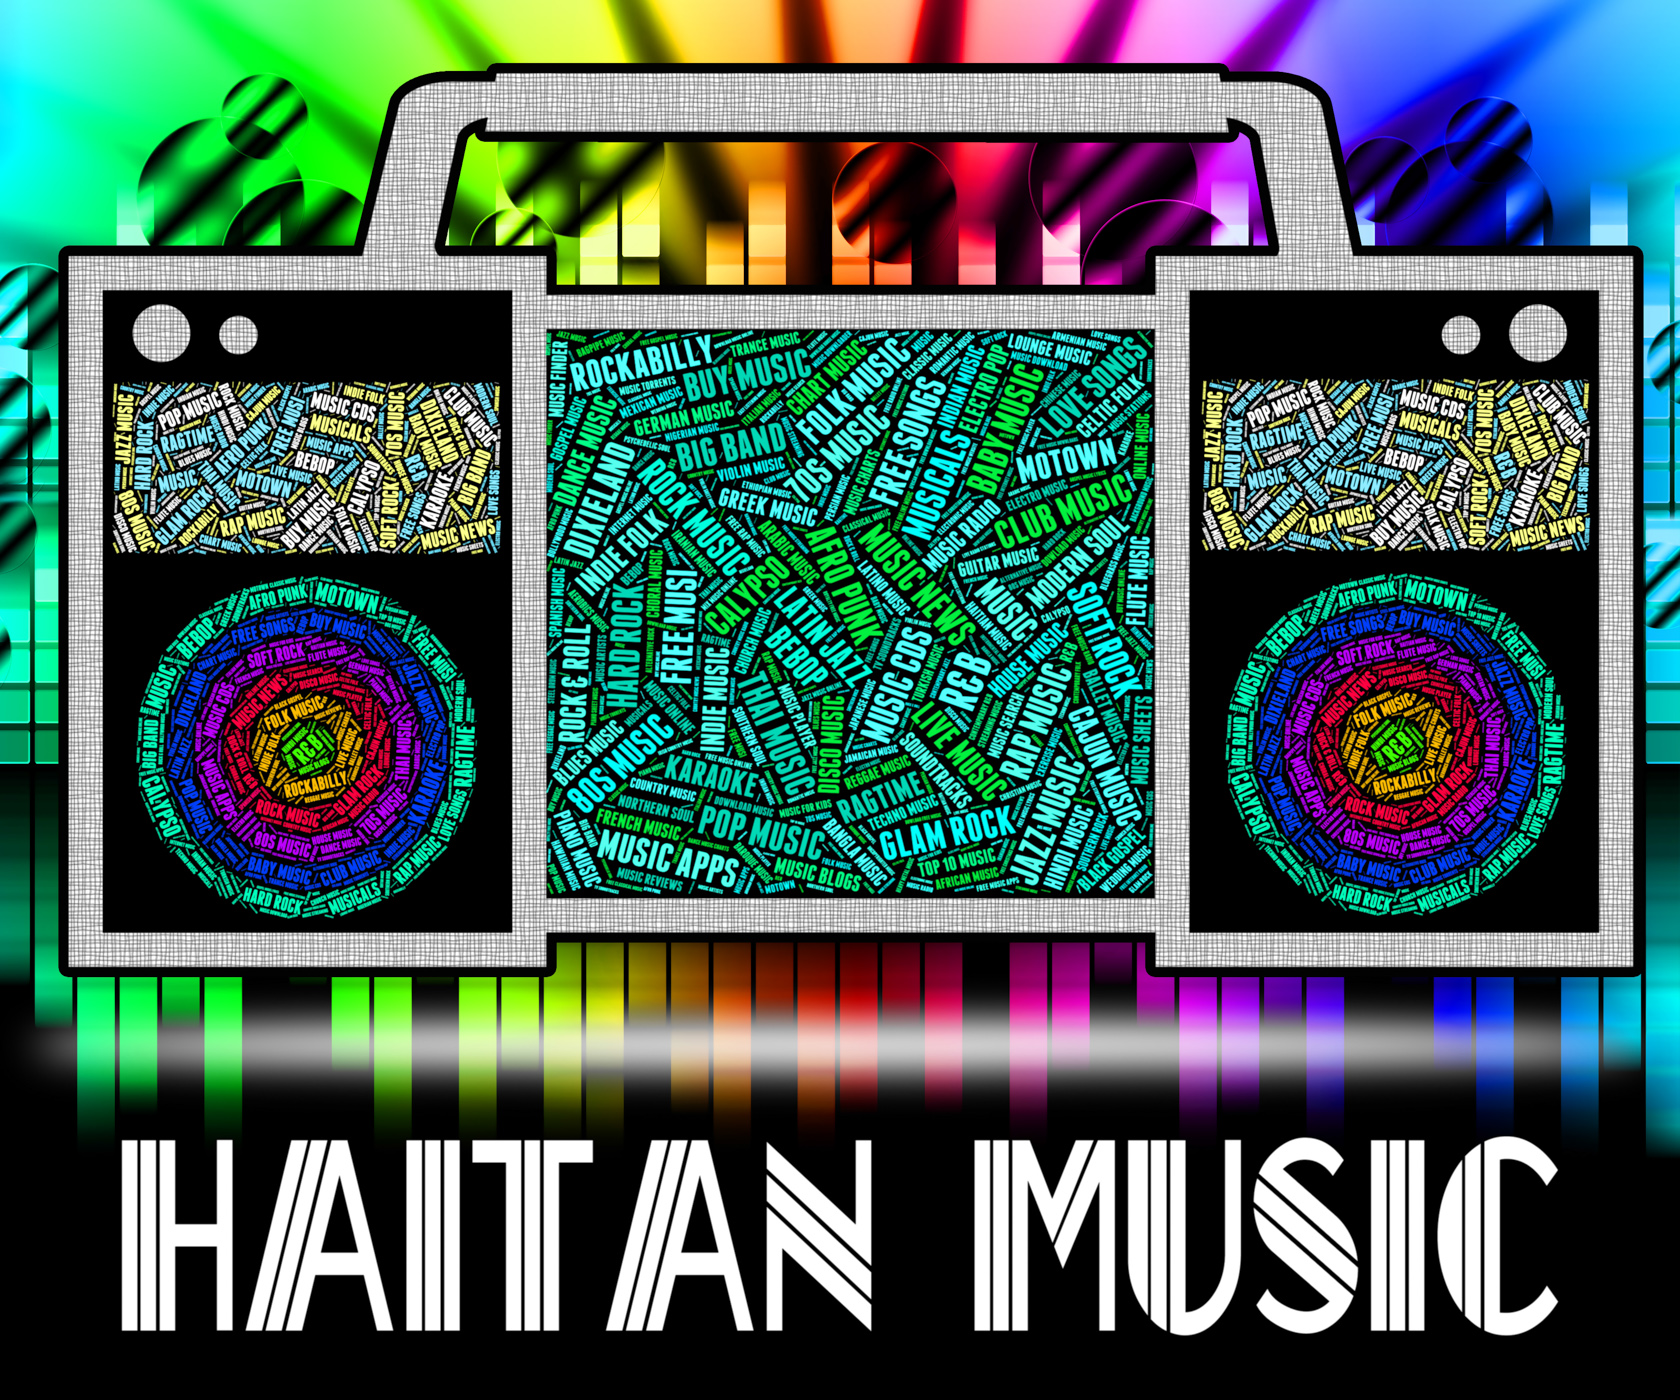 Haitian music indicates sound track and acoustic photo